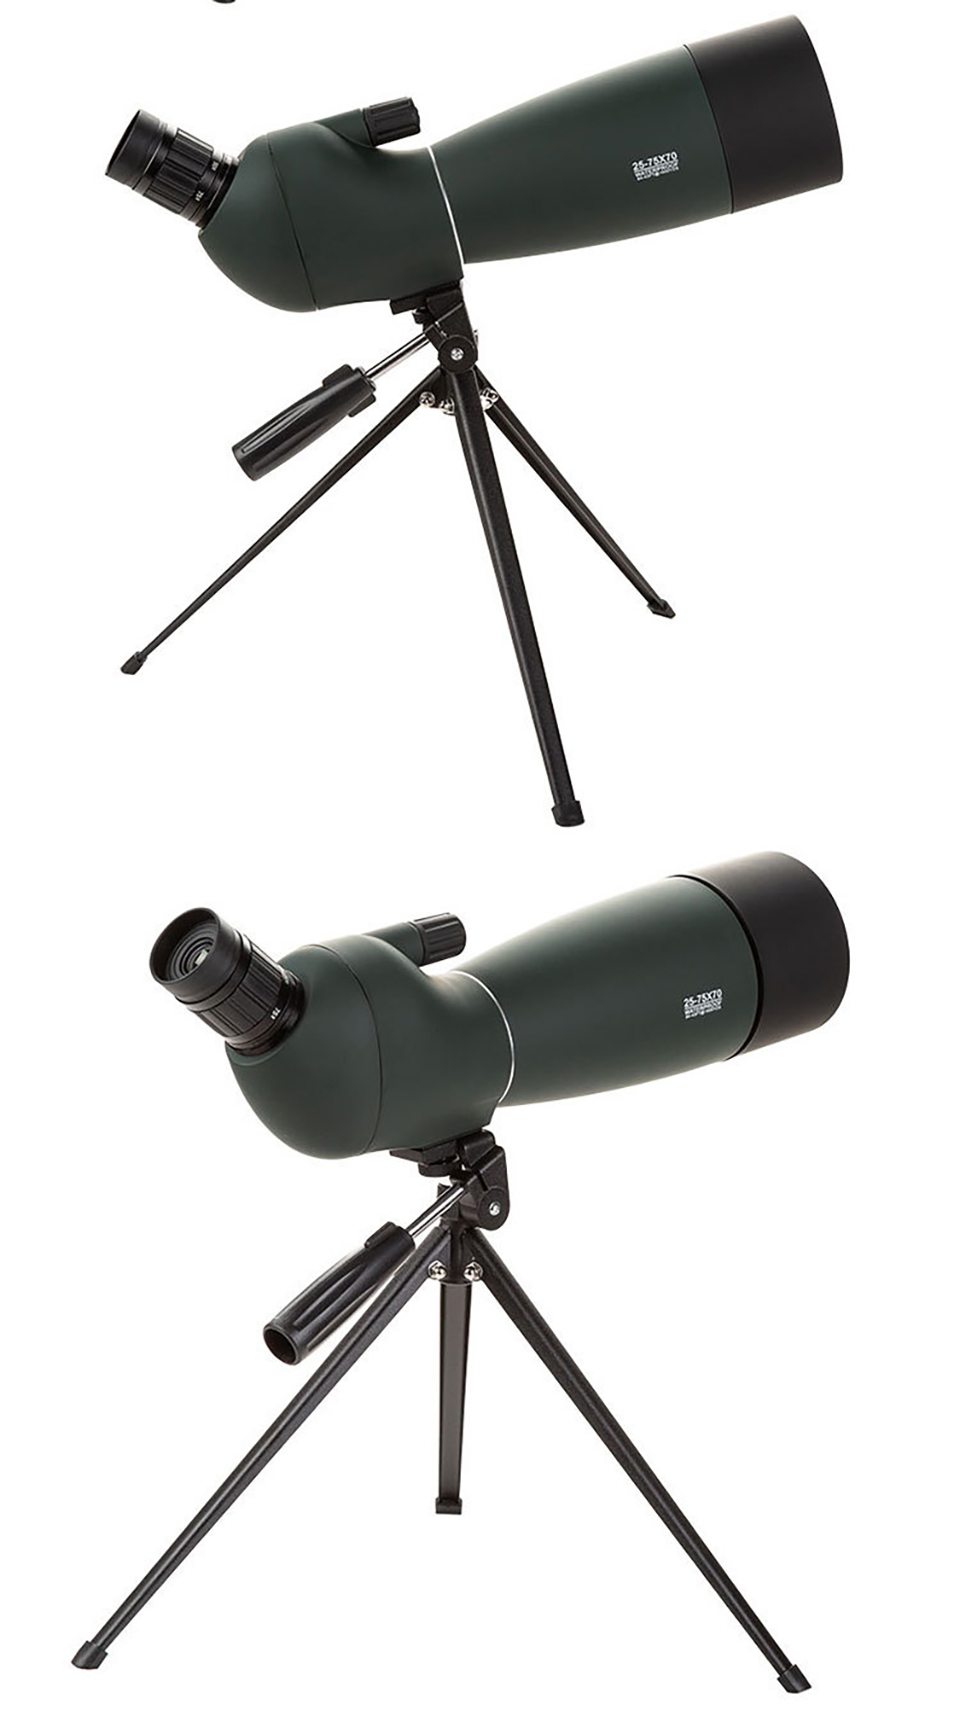 25-75x70 Monocular Telescope Spotting Scope Zoom Powerful Long Range Telescope Low Light Night Vision for Hunting with Tripod, (Telescope For Sale, Telescope For Adults, Telescope For Kids, Telescope For Beginners, Best Outdoor Telescope).